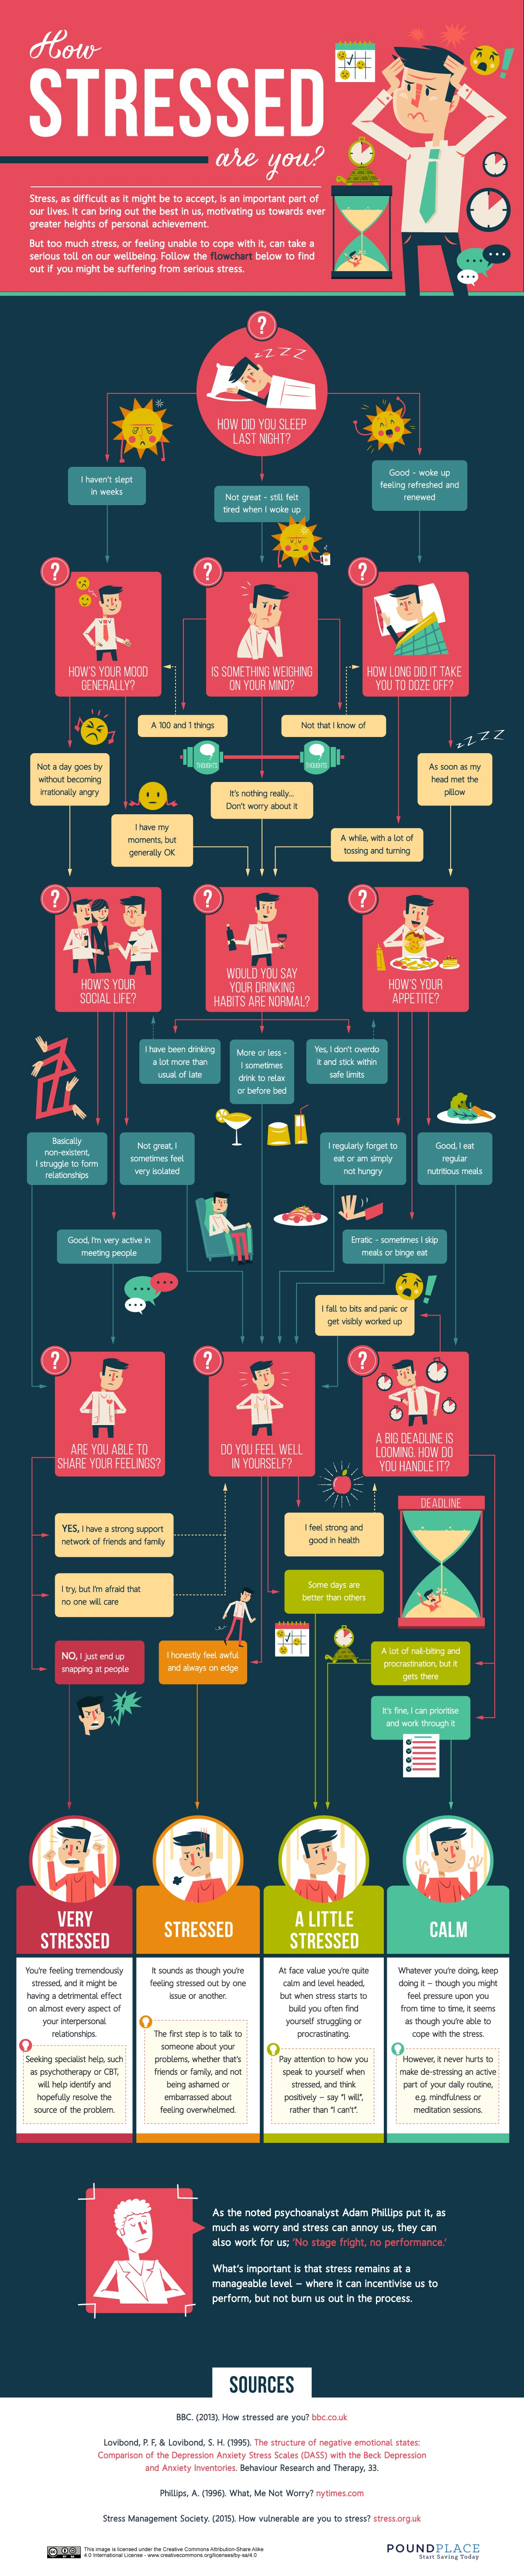 how-stressed-are-you- Flowchart for entrepreneurs and Digital Marketers